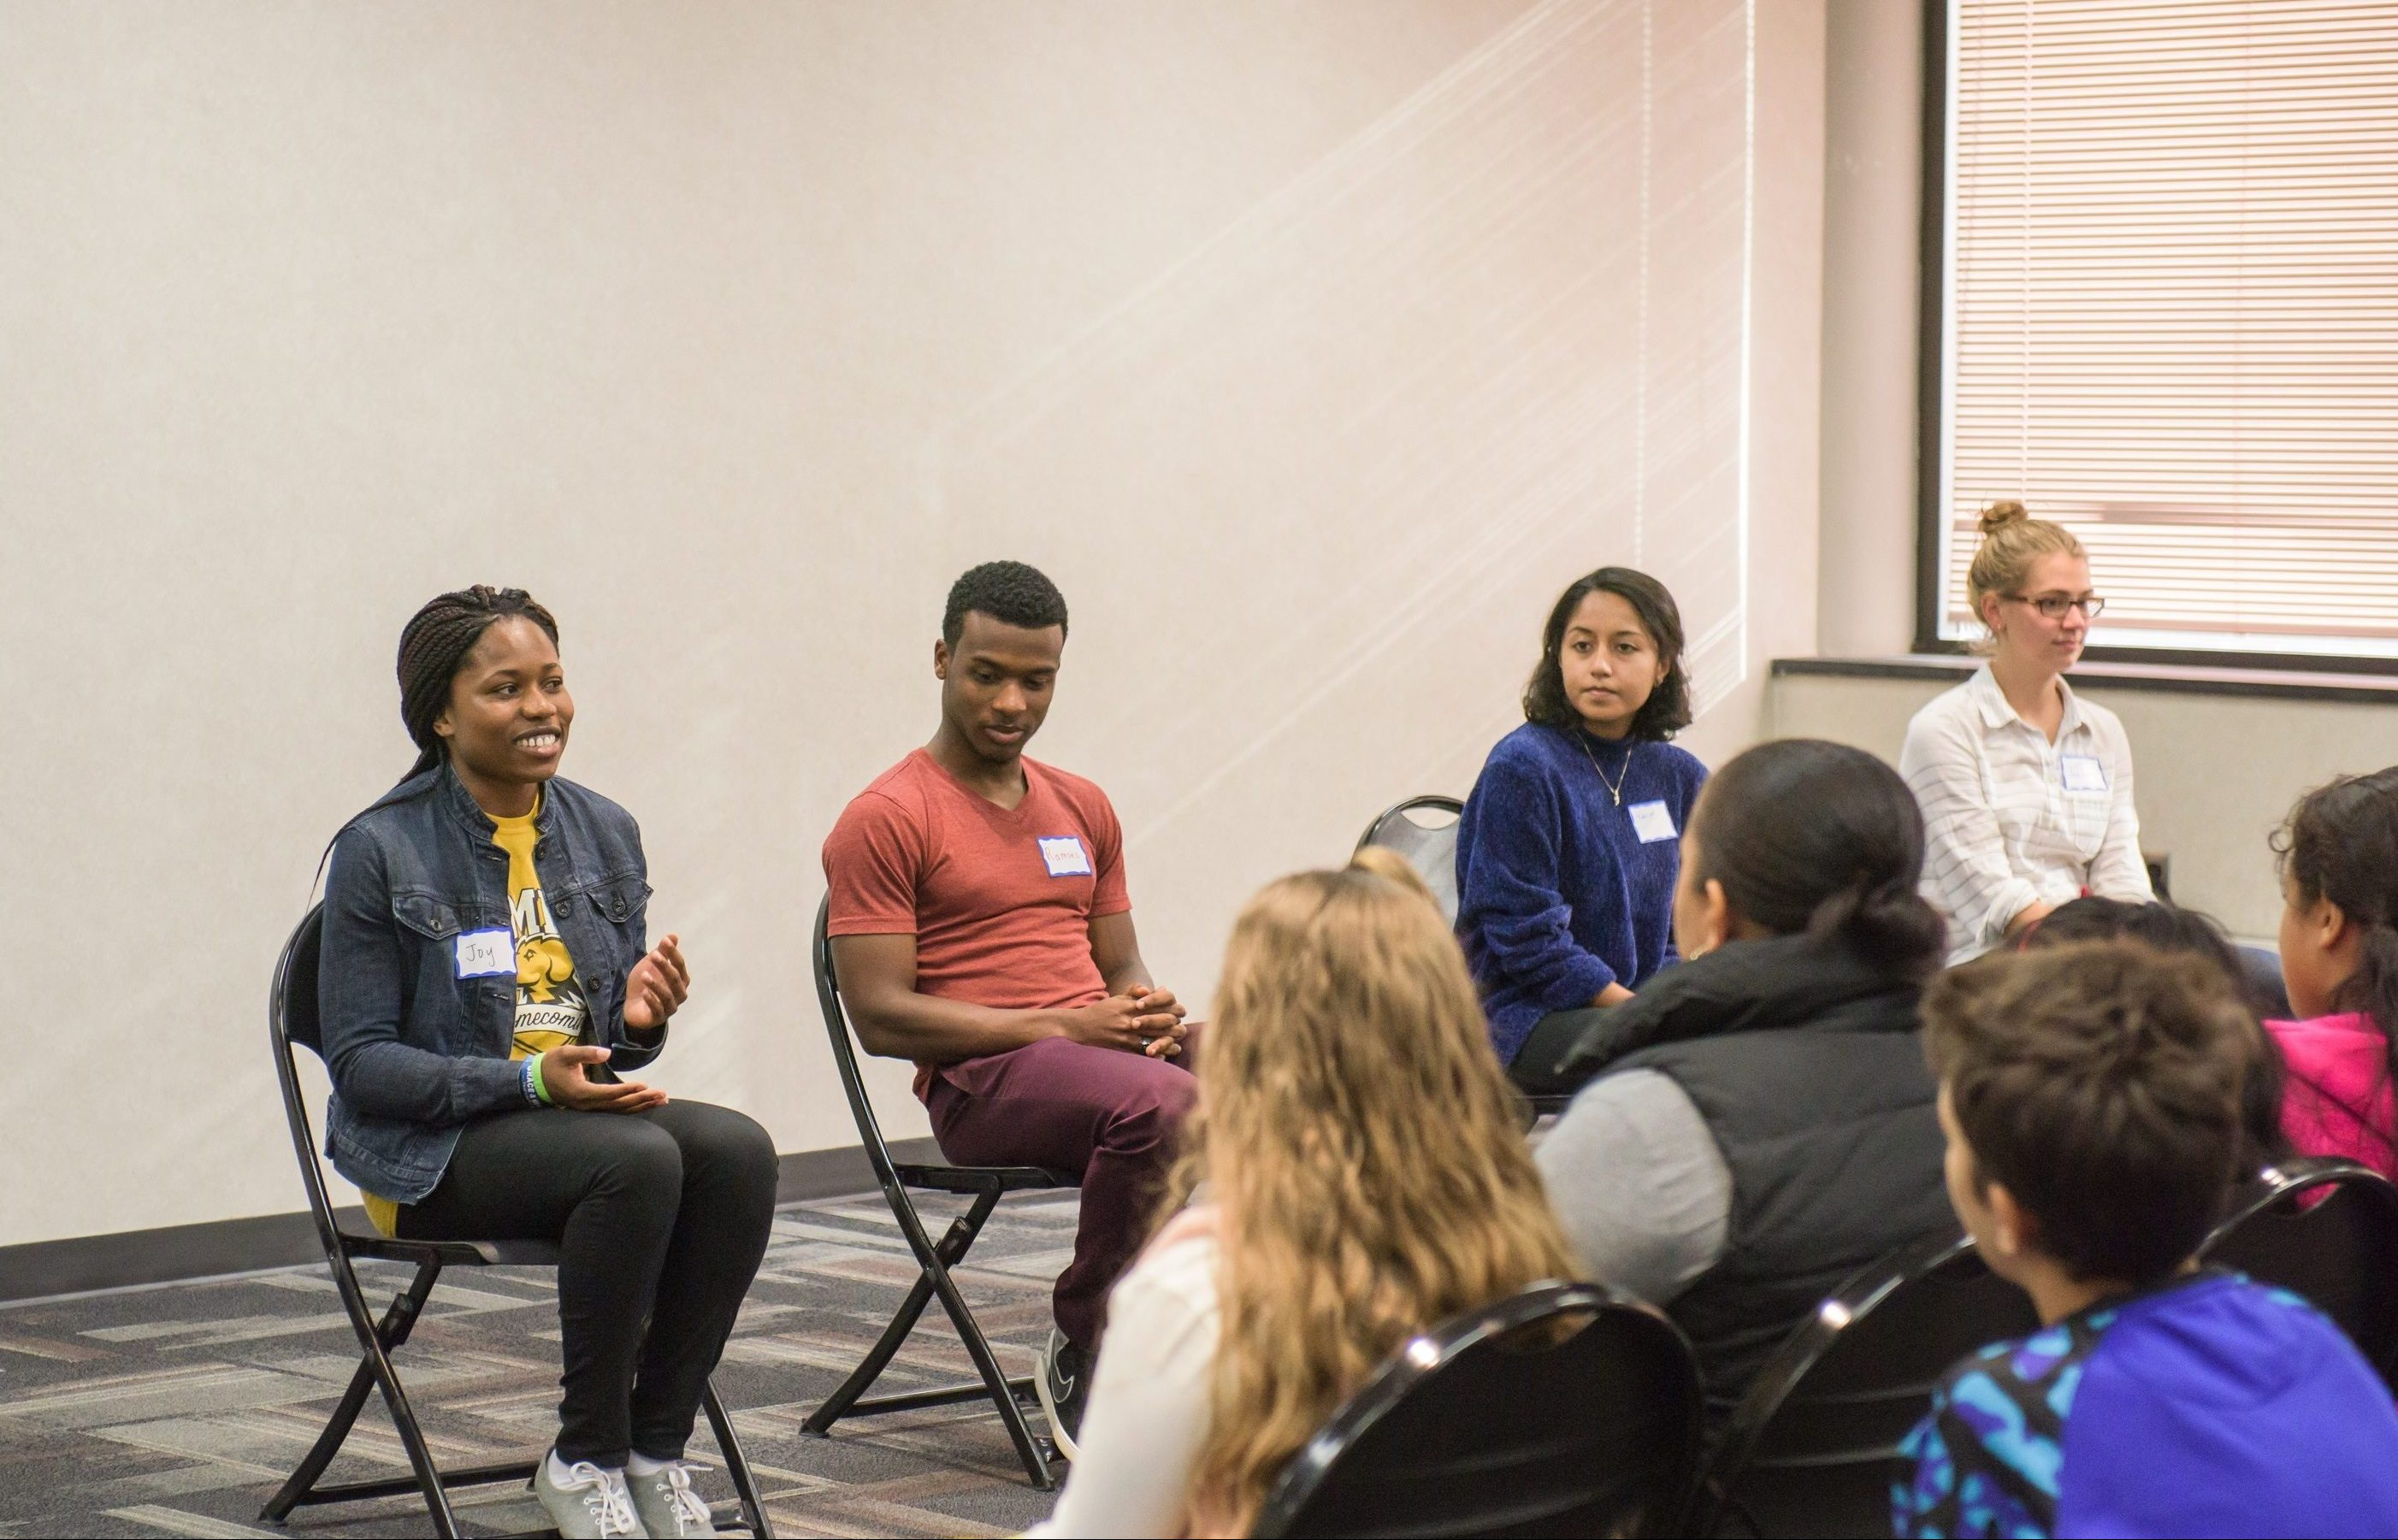 Baltimore City Elementary School Students Learn About College Opportunities Through Umbc Visit